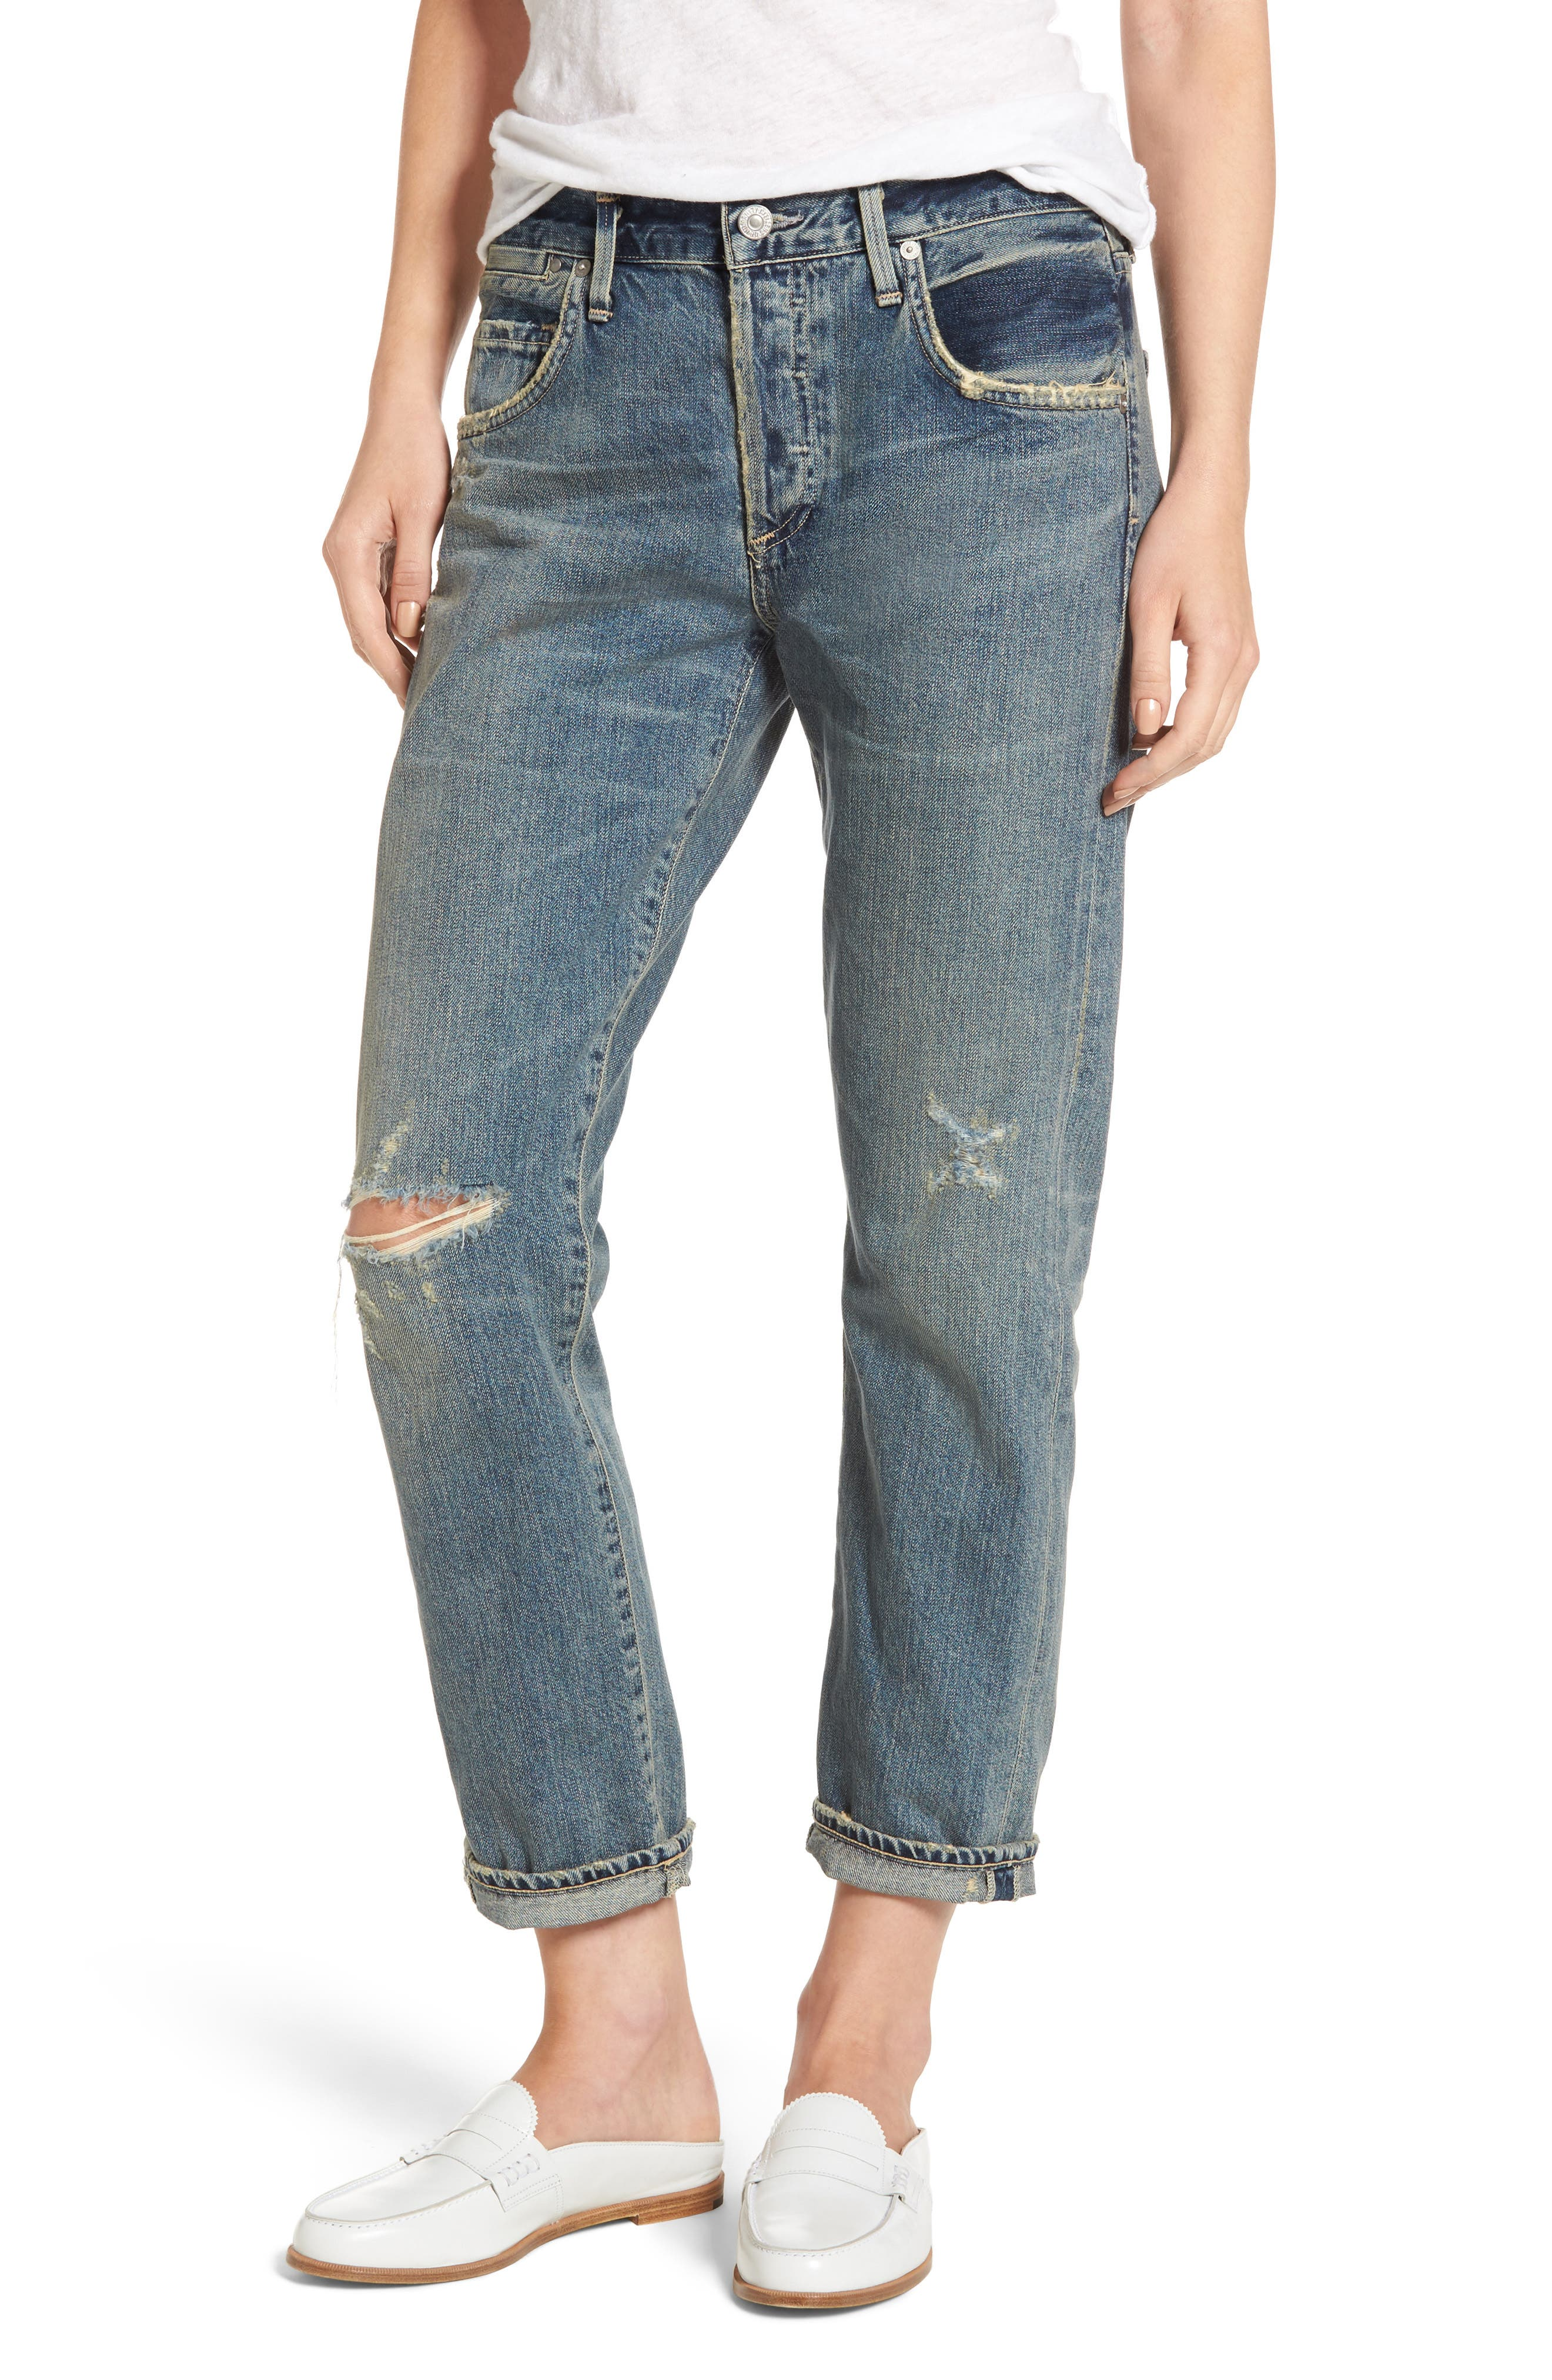 Emerson Ripped Slim Boyfriend Jeans,                             Main thumbnail 1, color,                             470